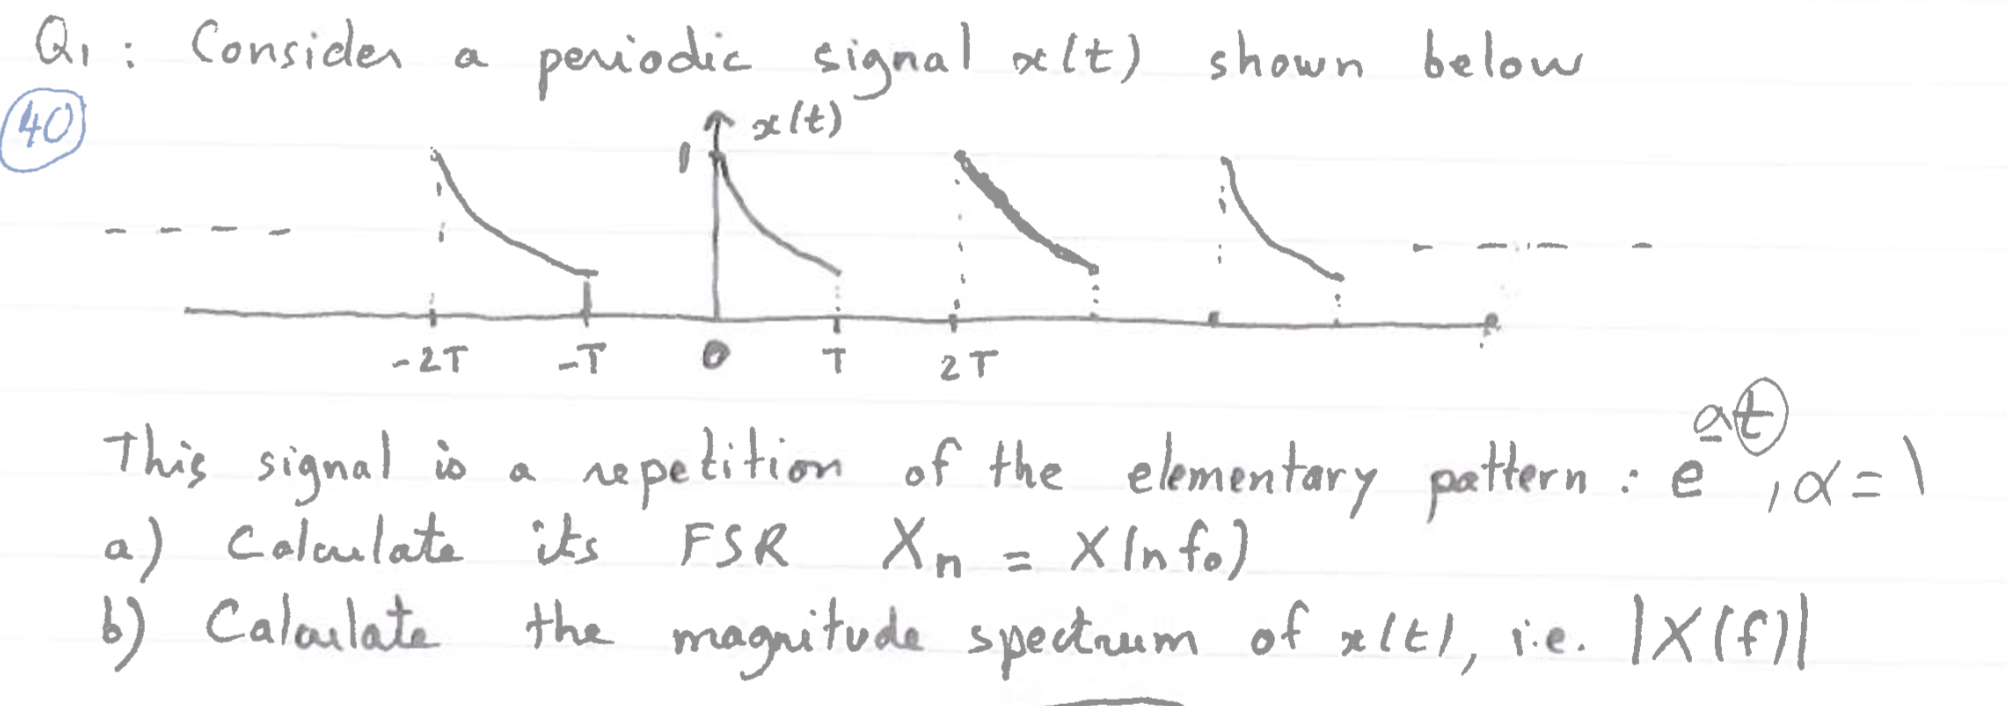 Consider a periodic signal x(t) shown below This s